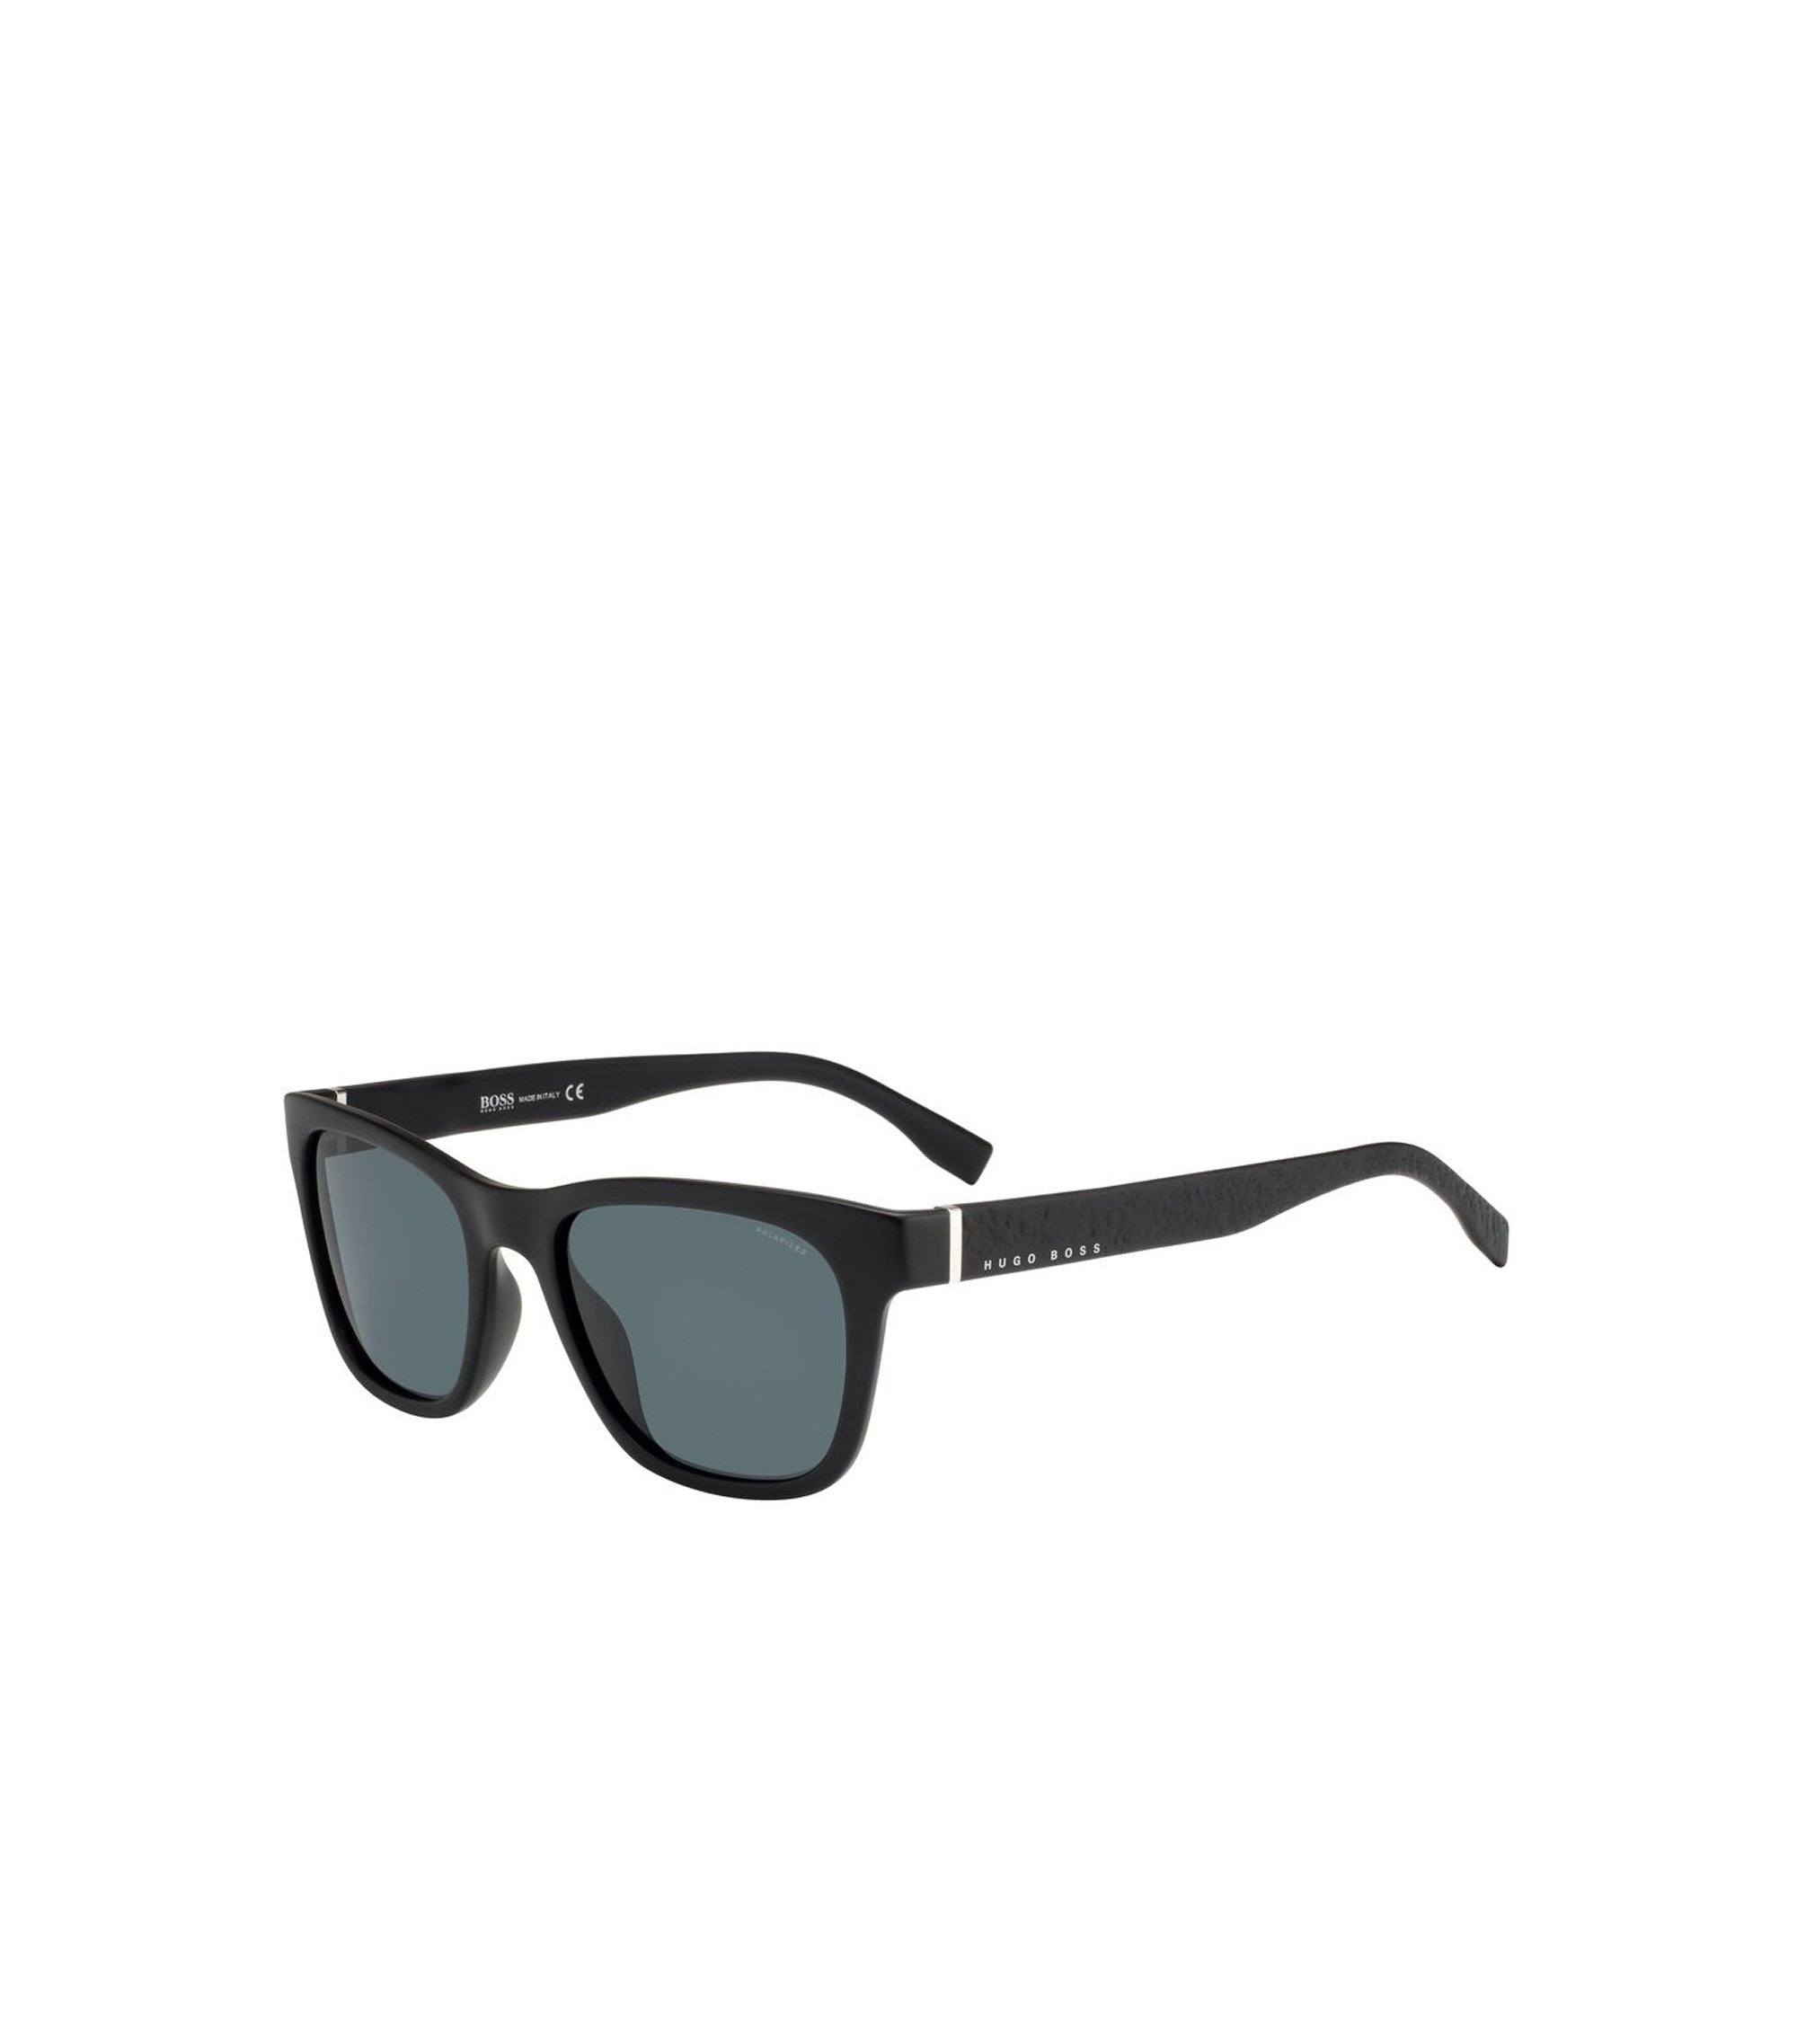 Black Lens Polarized Optyl Square Sunglasses | BOSS 0830S, Assorted-Pre-Pack